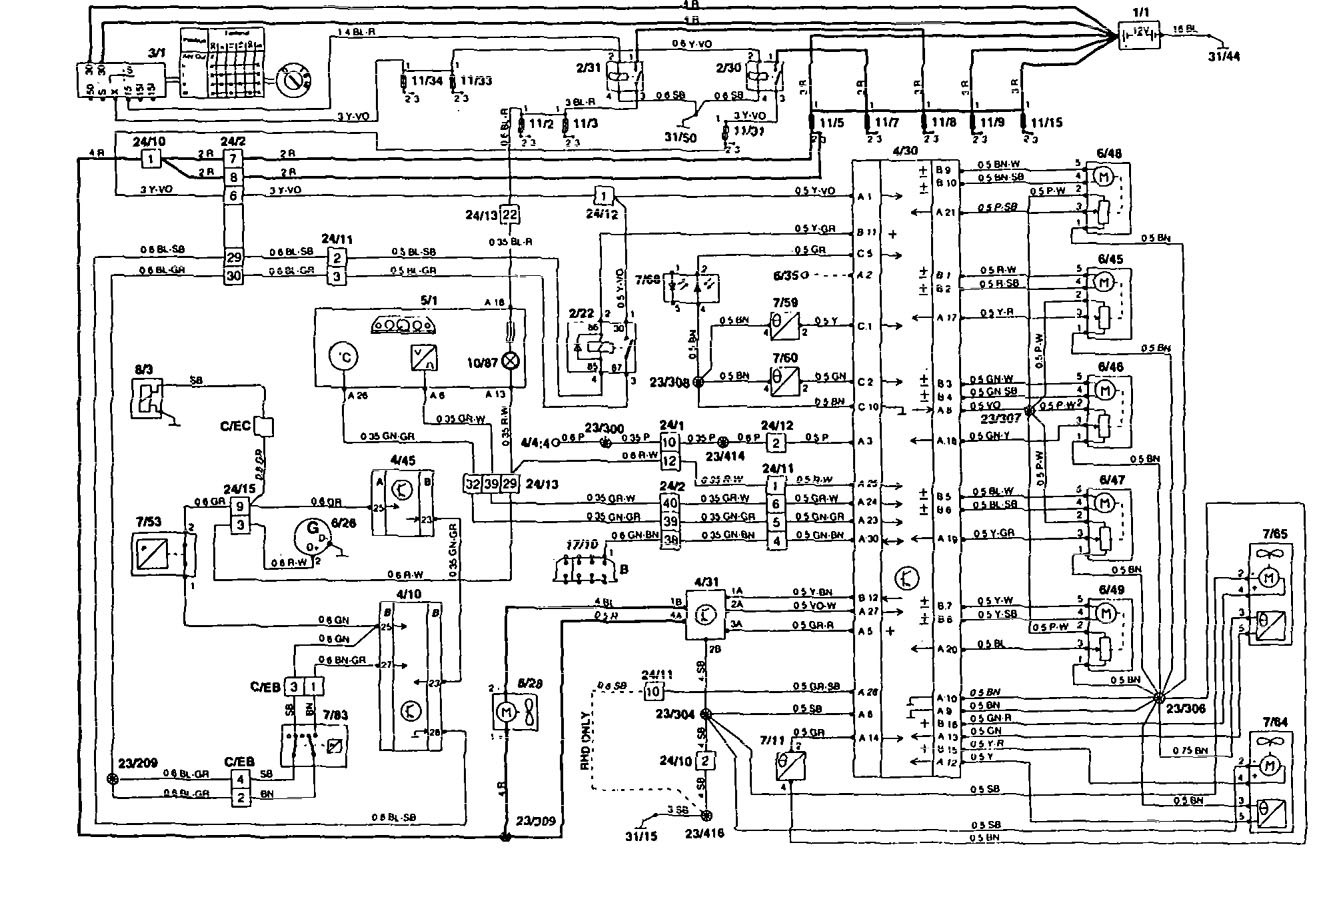 volvo 850 wiring diagram hvac controls 1 1995 volvo 850 (1995) wiring diagrams hvac controls carknowledge skoda roomster wiring diagram at readyjetset.co